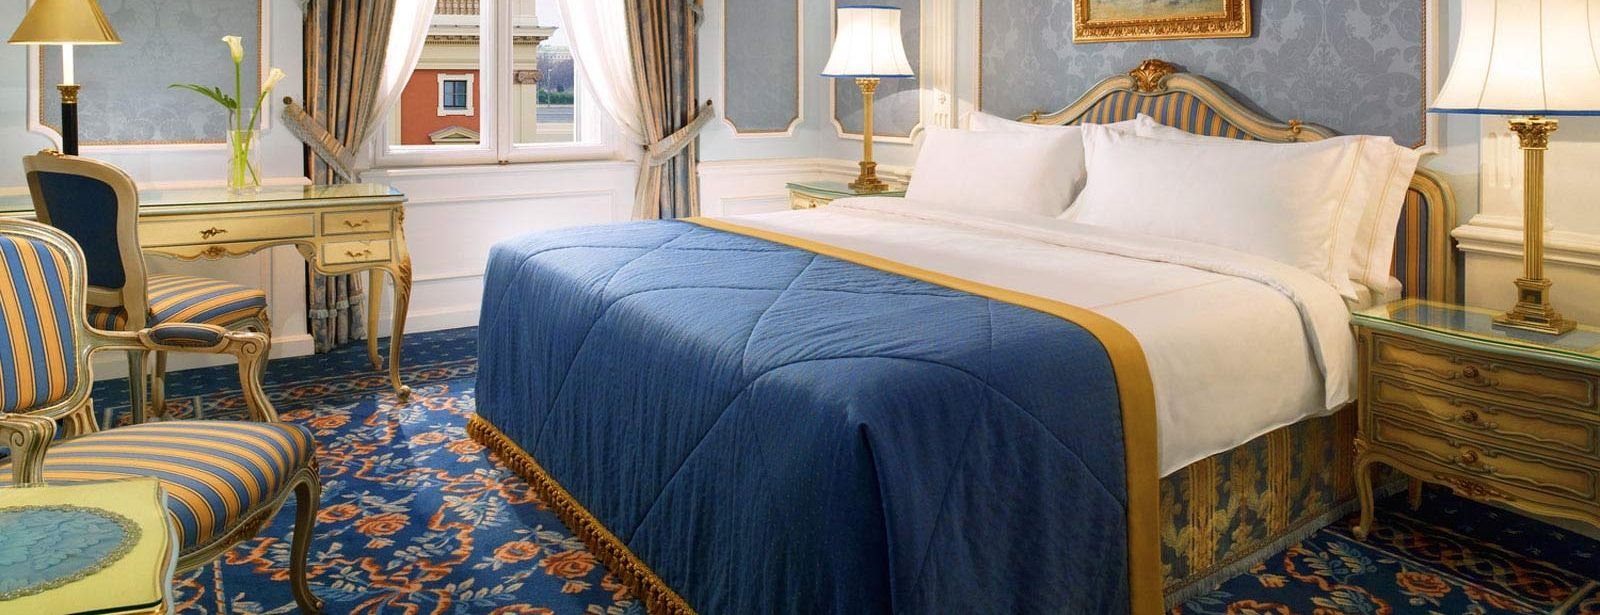 Hotel Imperial Vienna | Classic Room